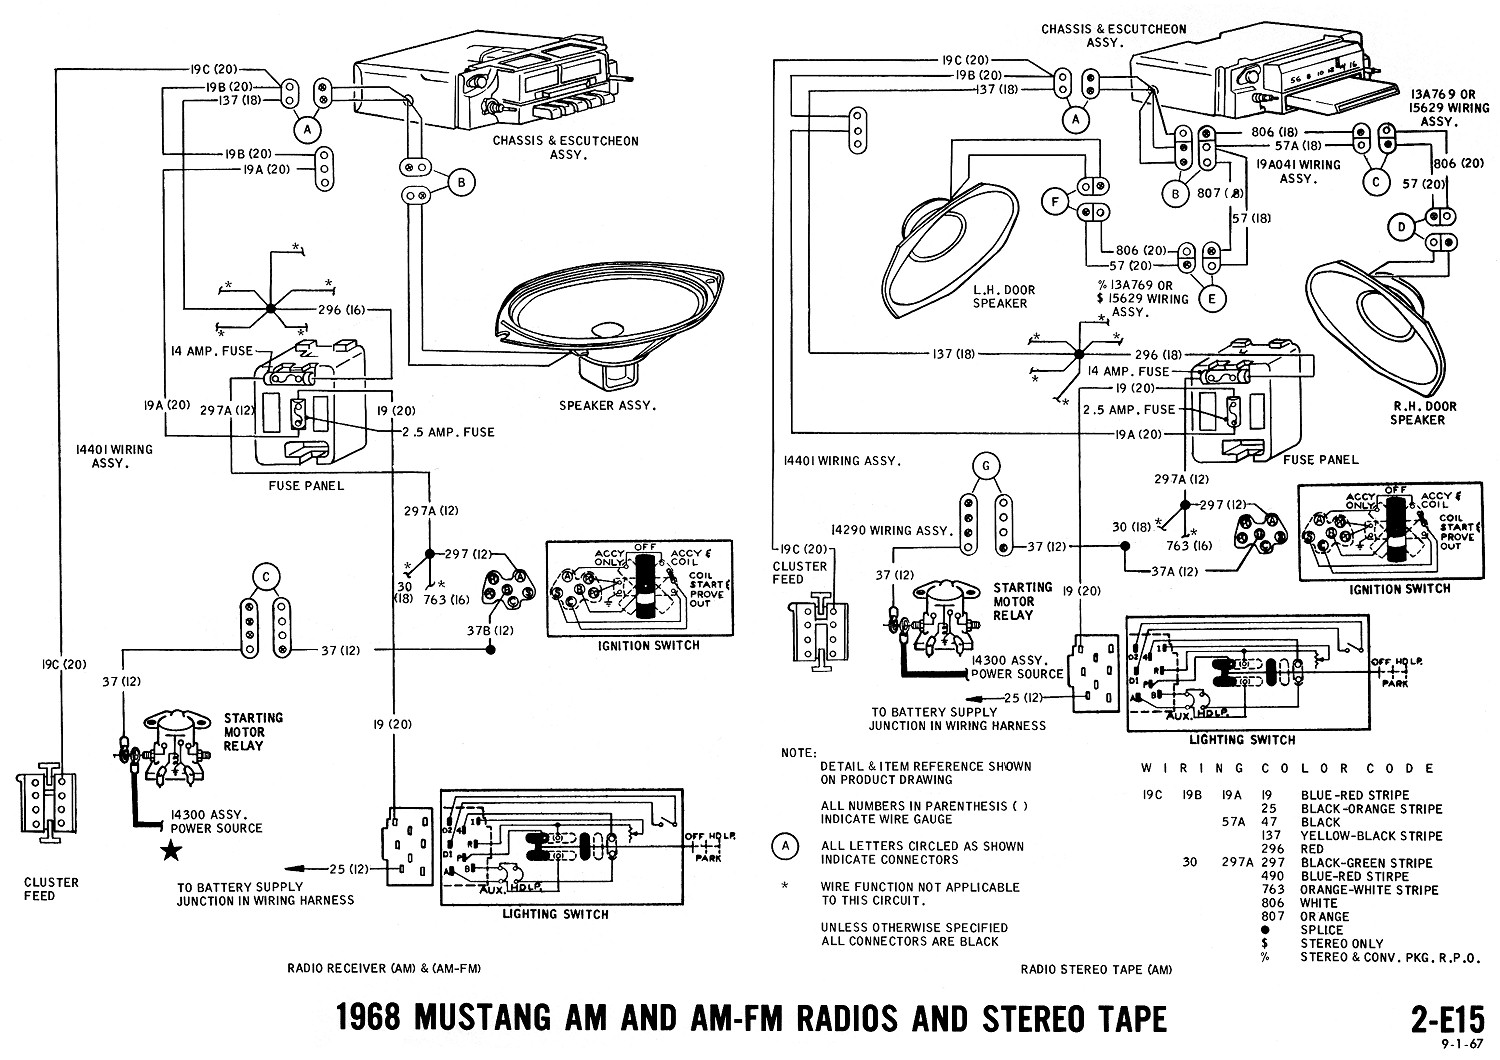 E15 1968 mustang wiring diagrams evolving software 2007 mustang gt stereo wiring diagram at gsmportal.co